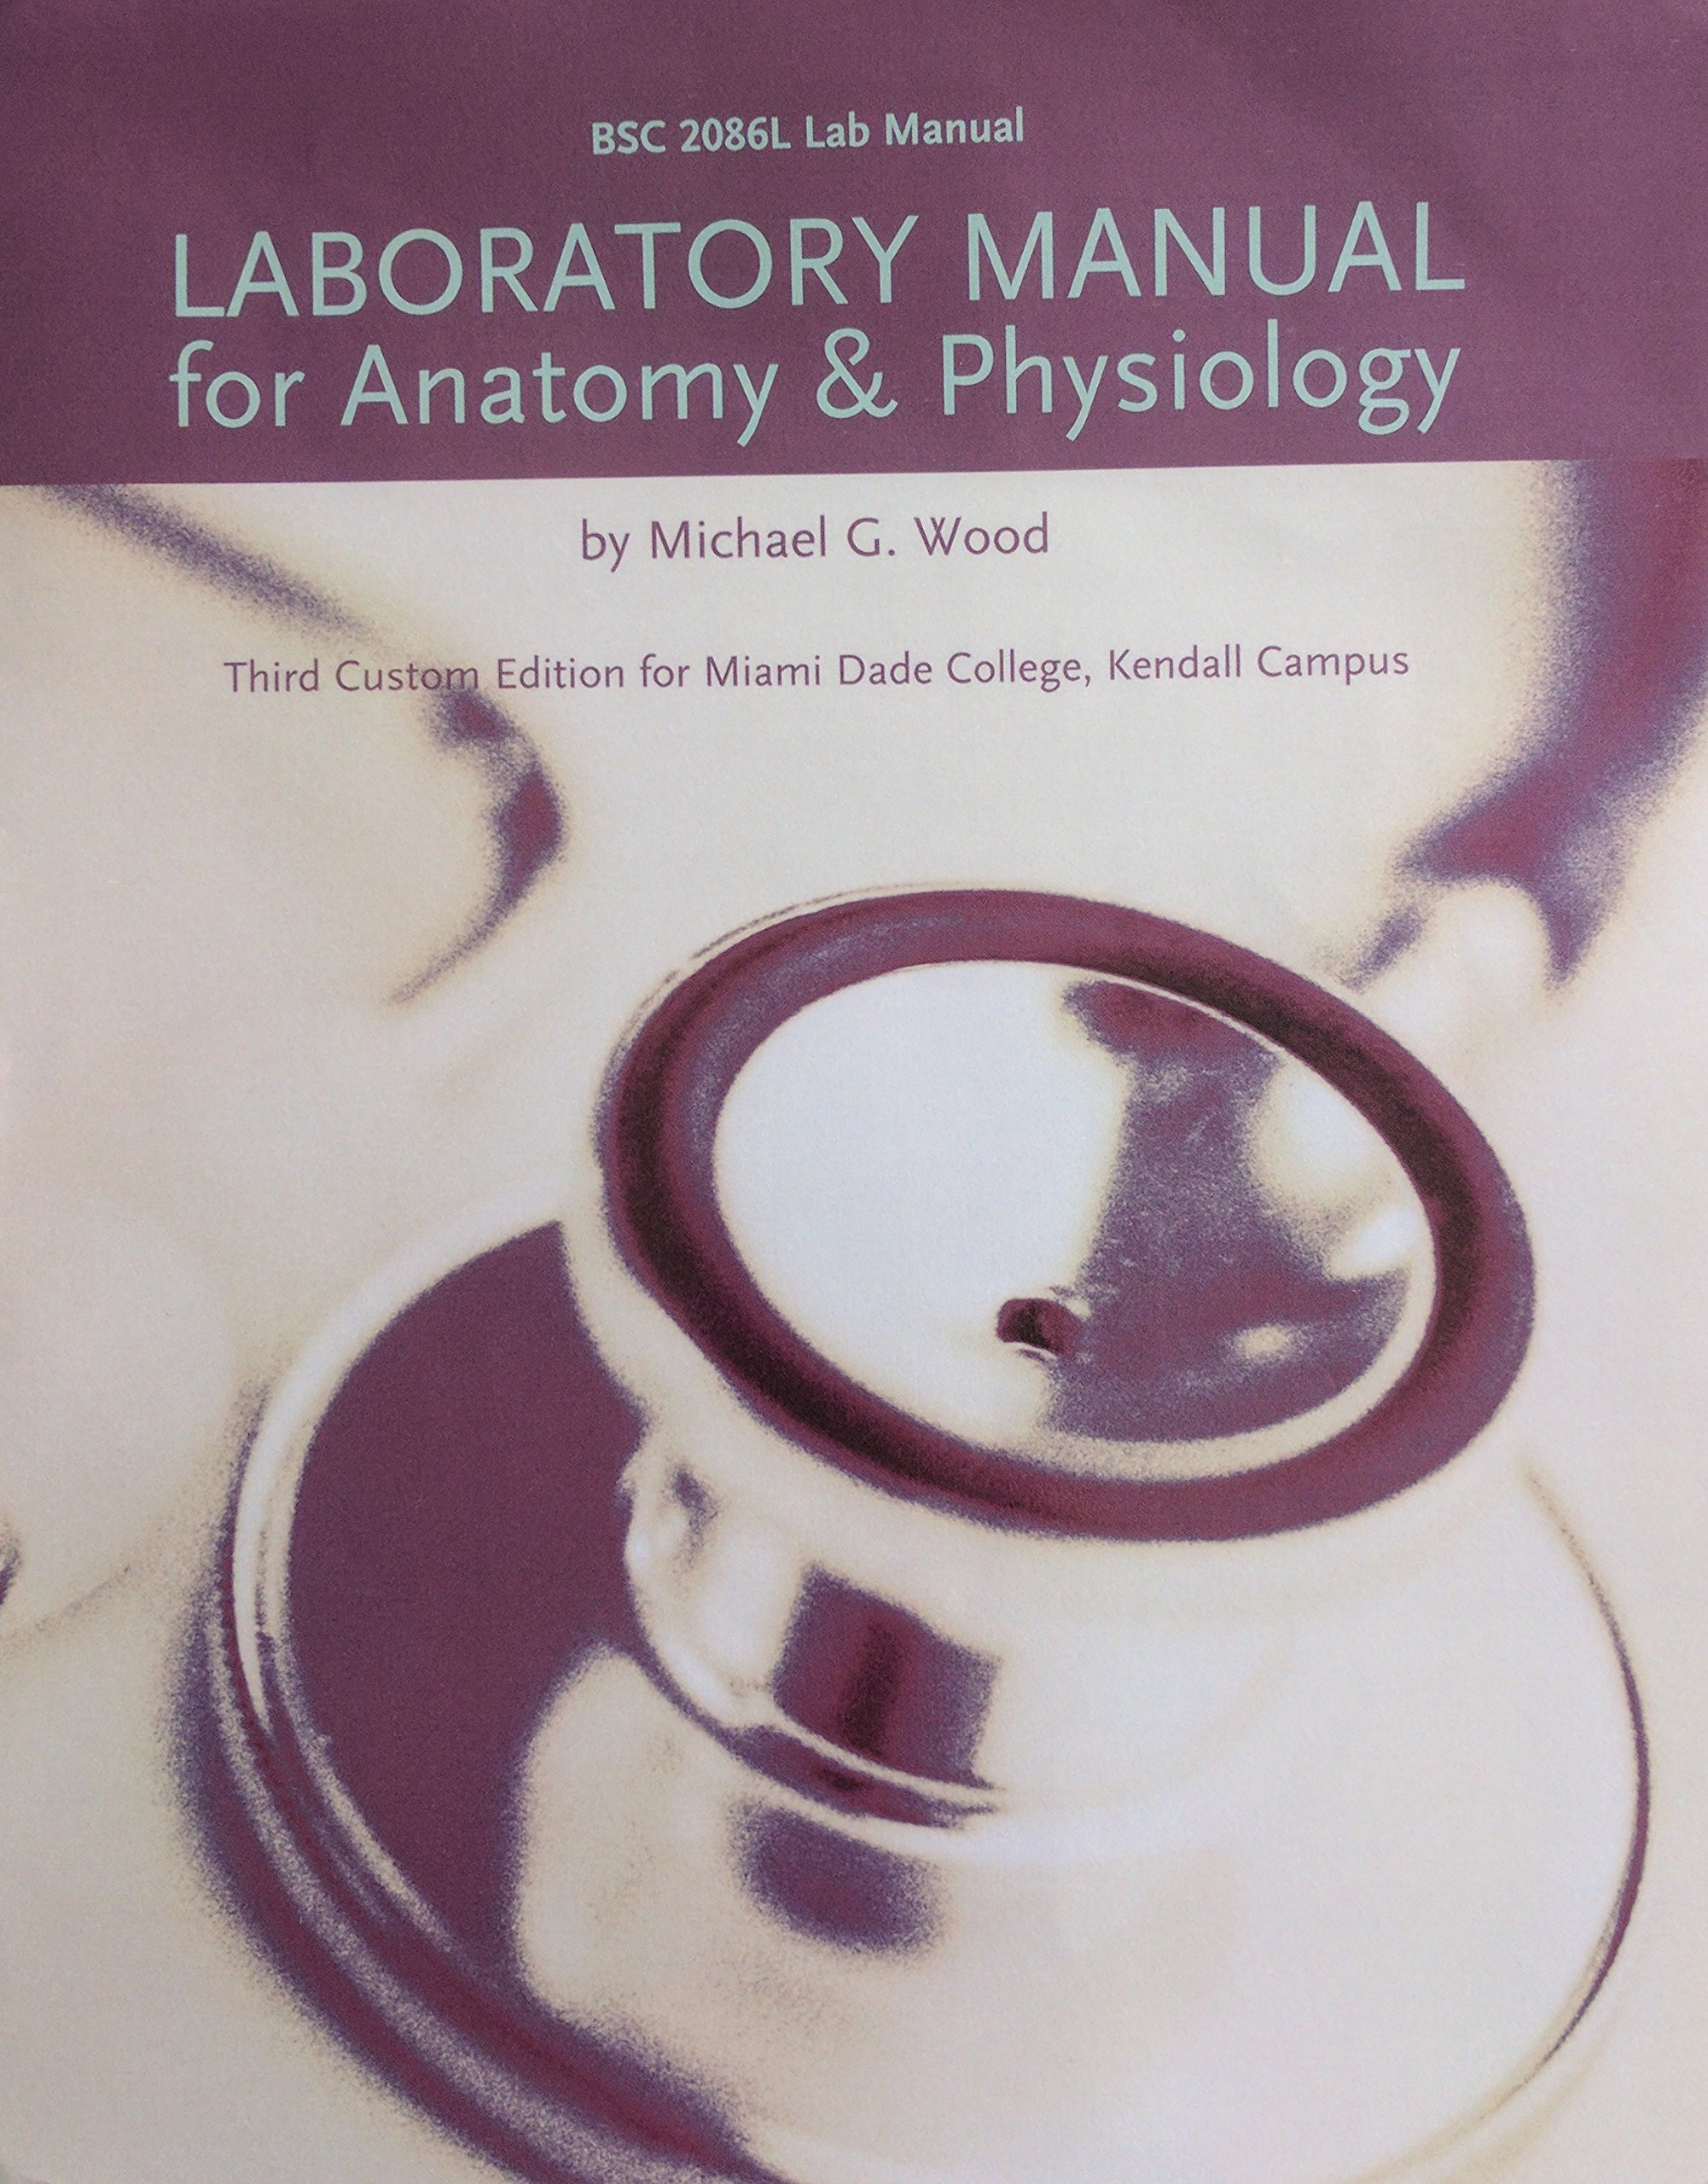 Laboratory Manual for Anatomy & Physiology: Michael G. Wood ...